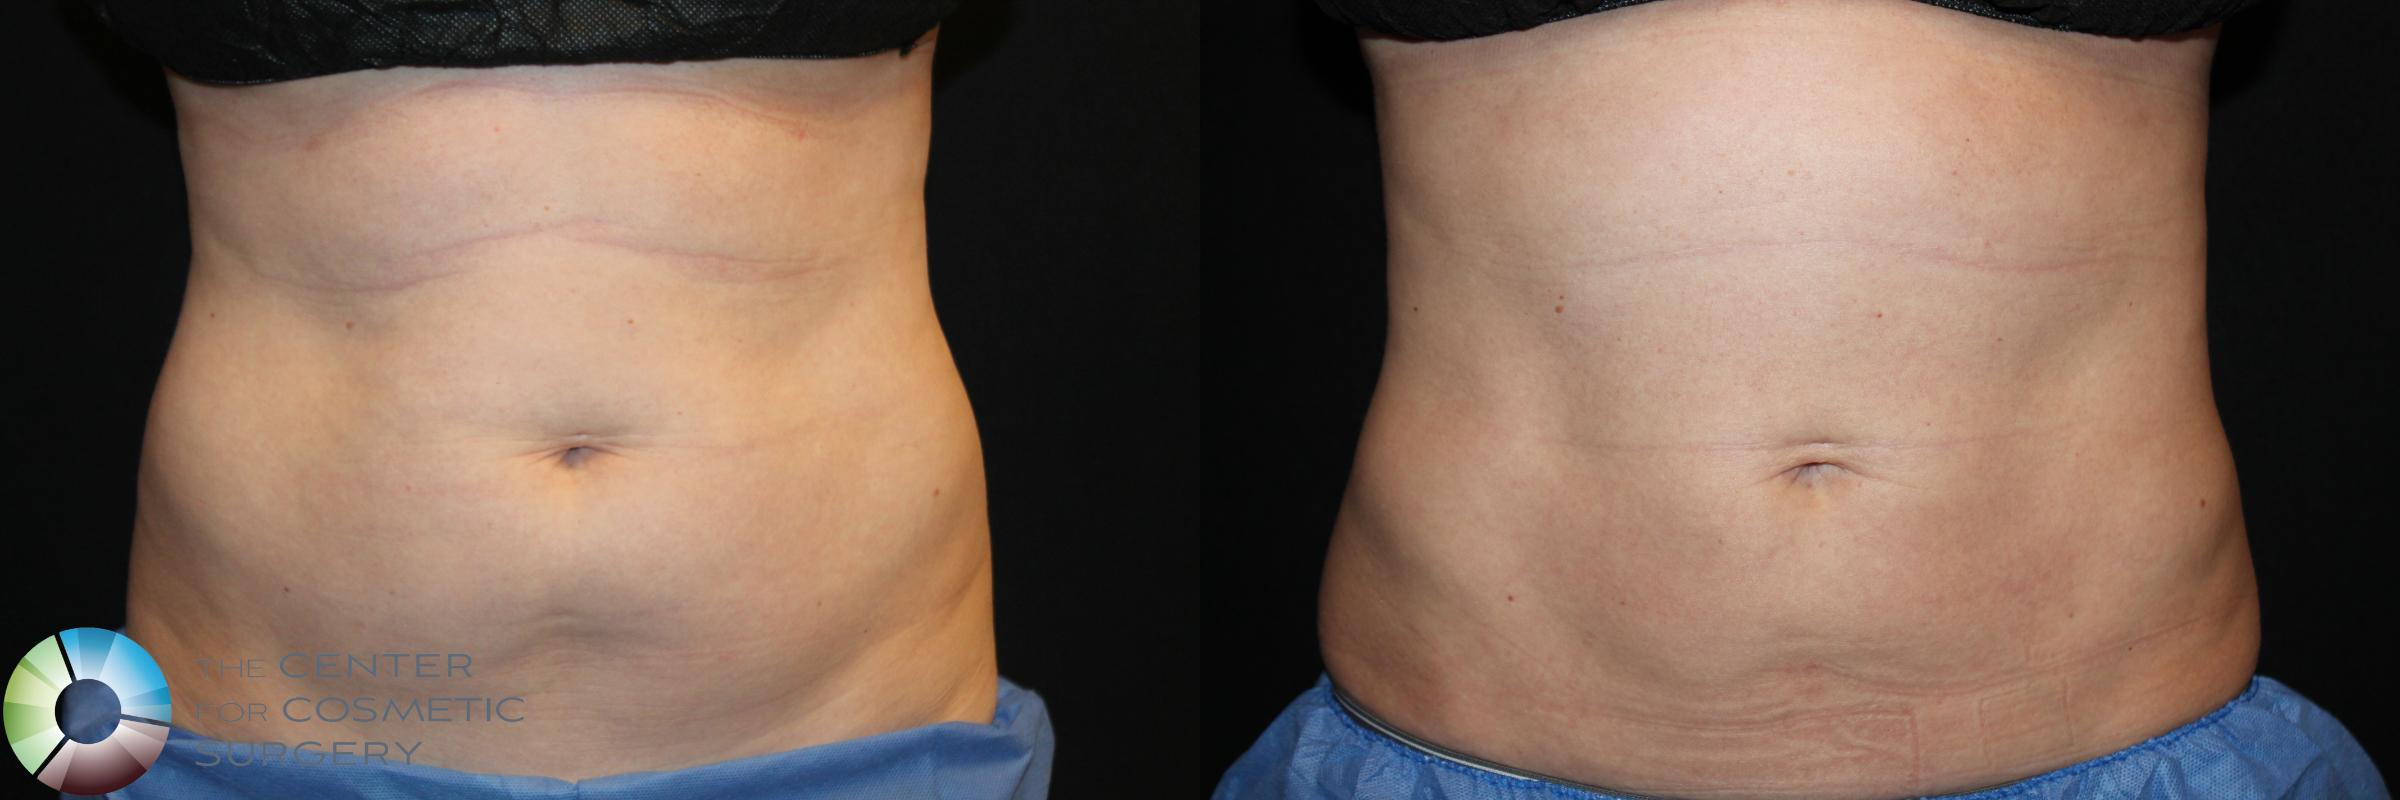 CoolSculpting Case 764 Before & After View #1 | Golden, CO | The Center for Cosmetic Surgery